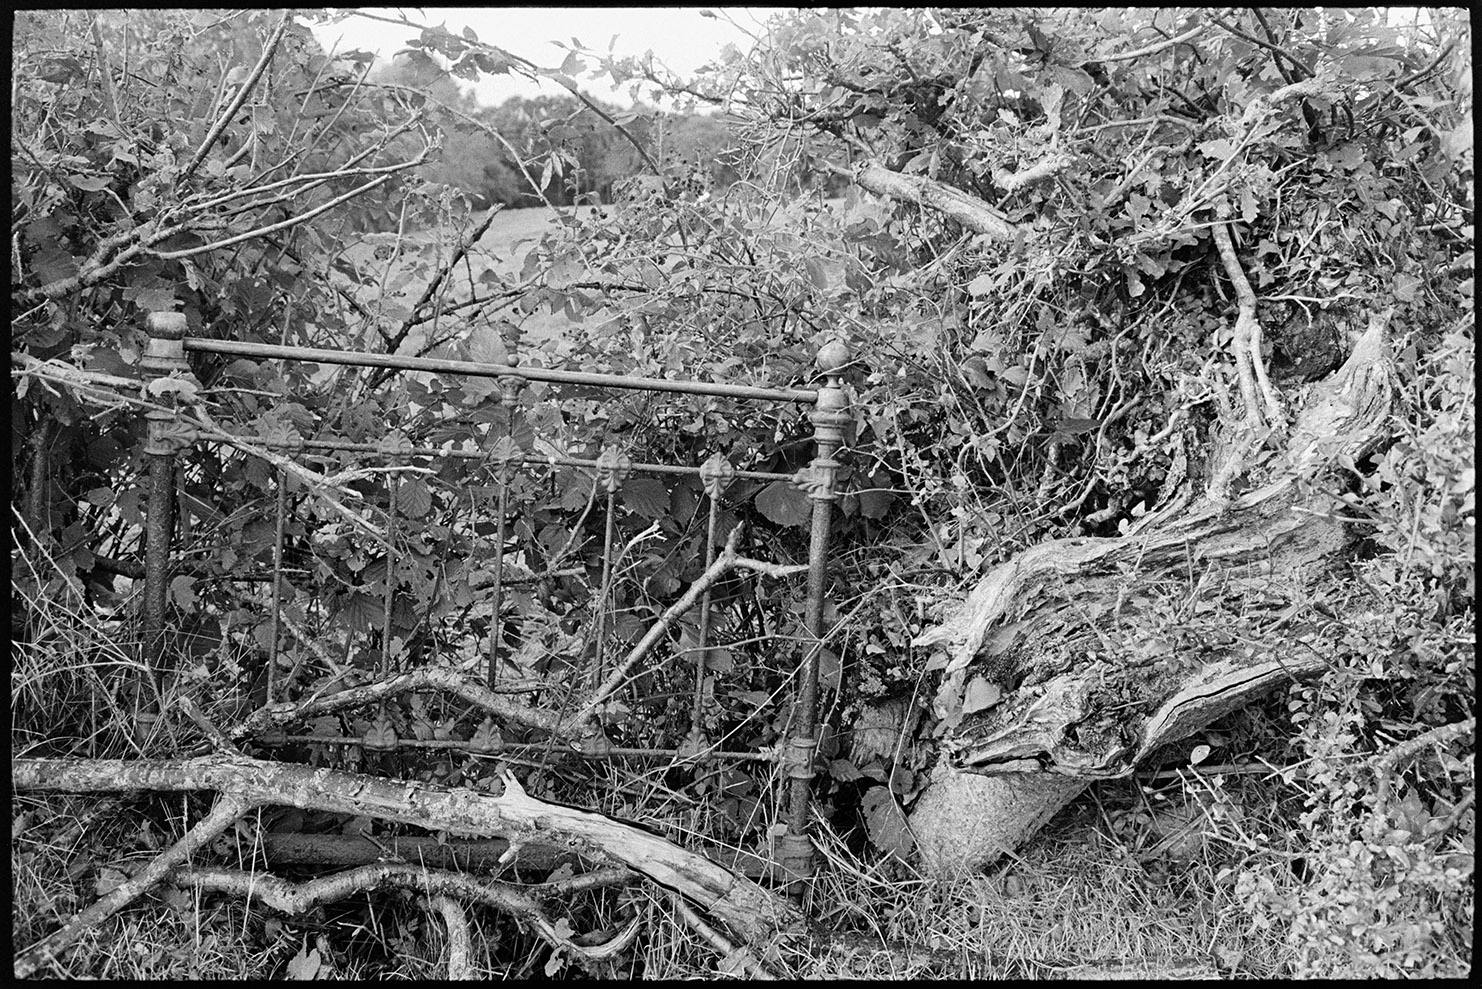 Natural Landscape, Hedge mended with old bedstead, Dolton, Woolridge, February, 1980.